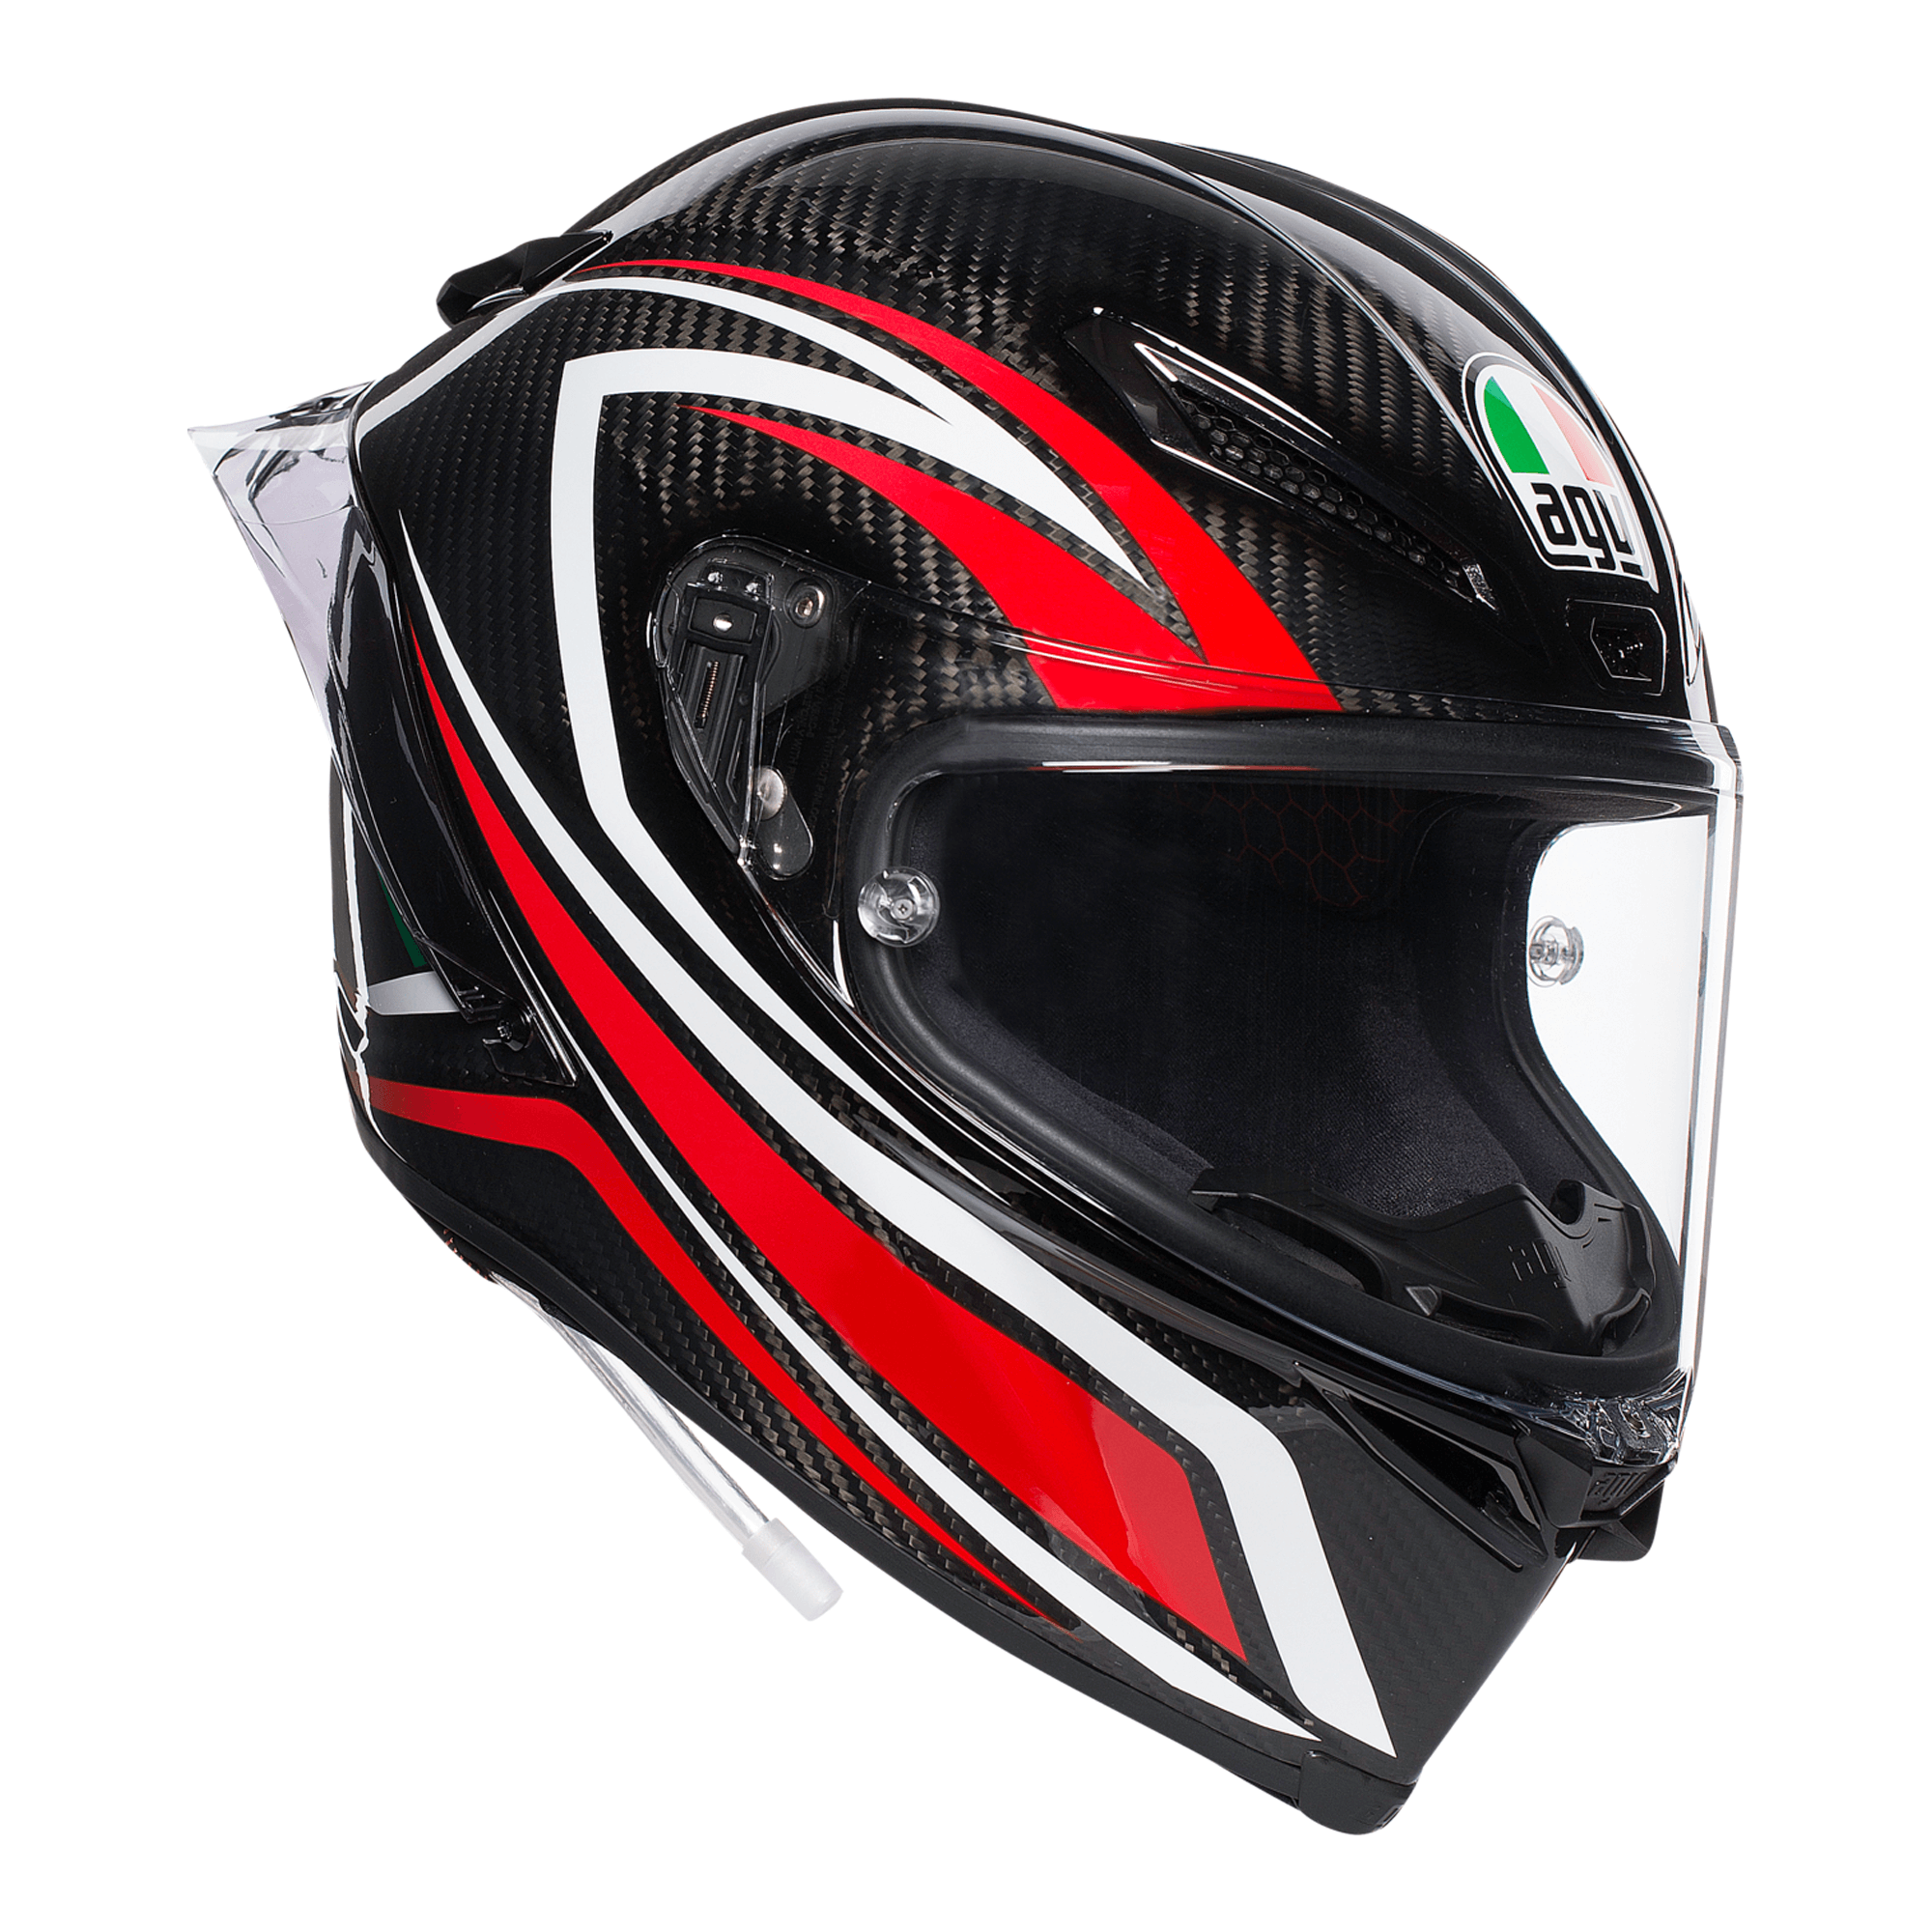 agv pista gp r staccata agv pista gpr agv helmets. Black Bedroom Furniture Sets. Home Design Ideas